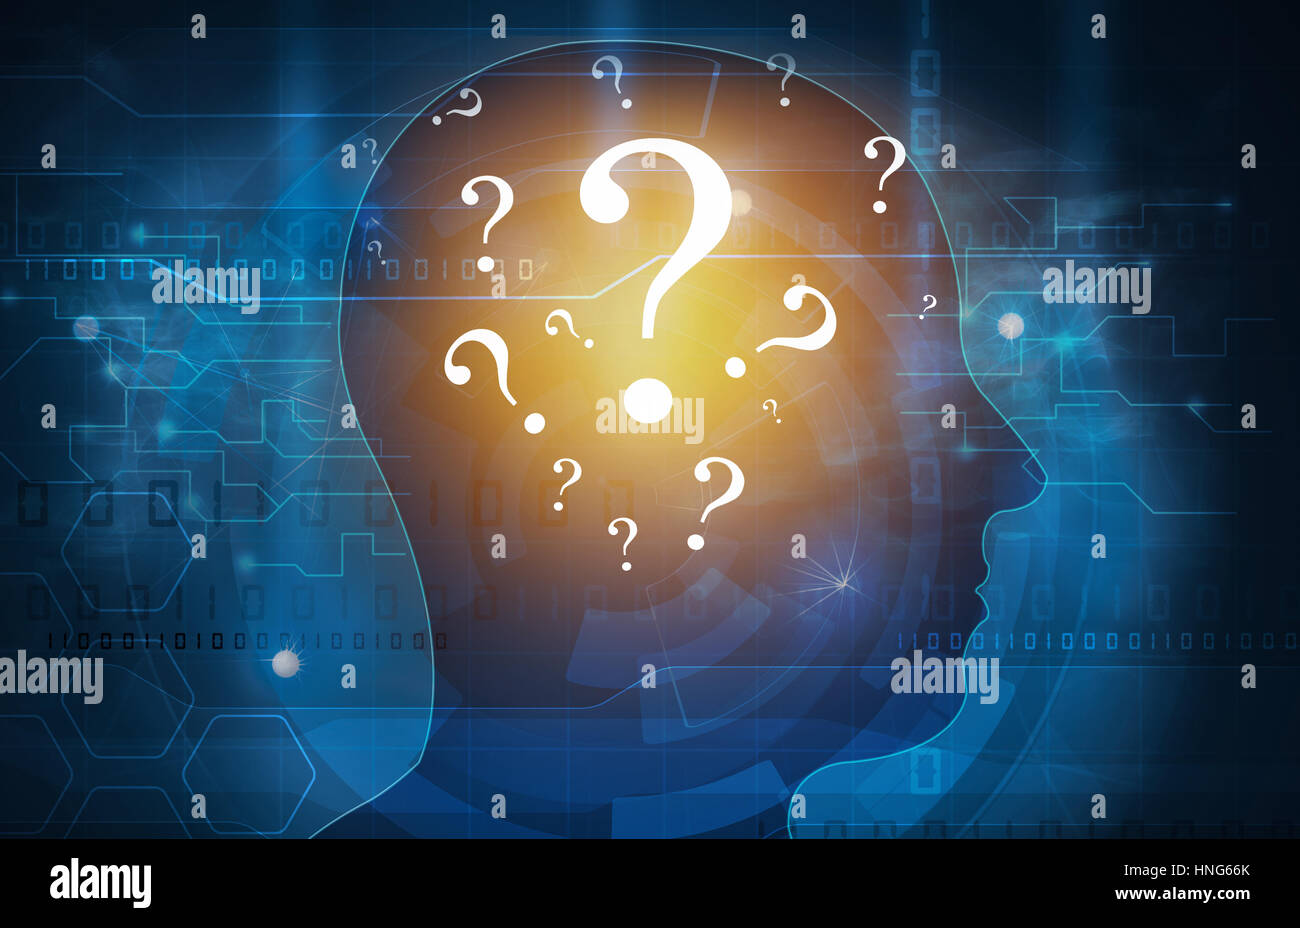 question mark head - Stock Image